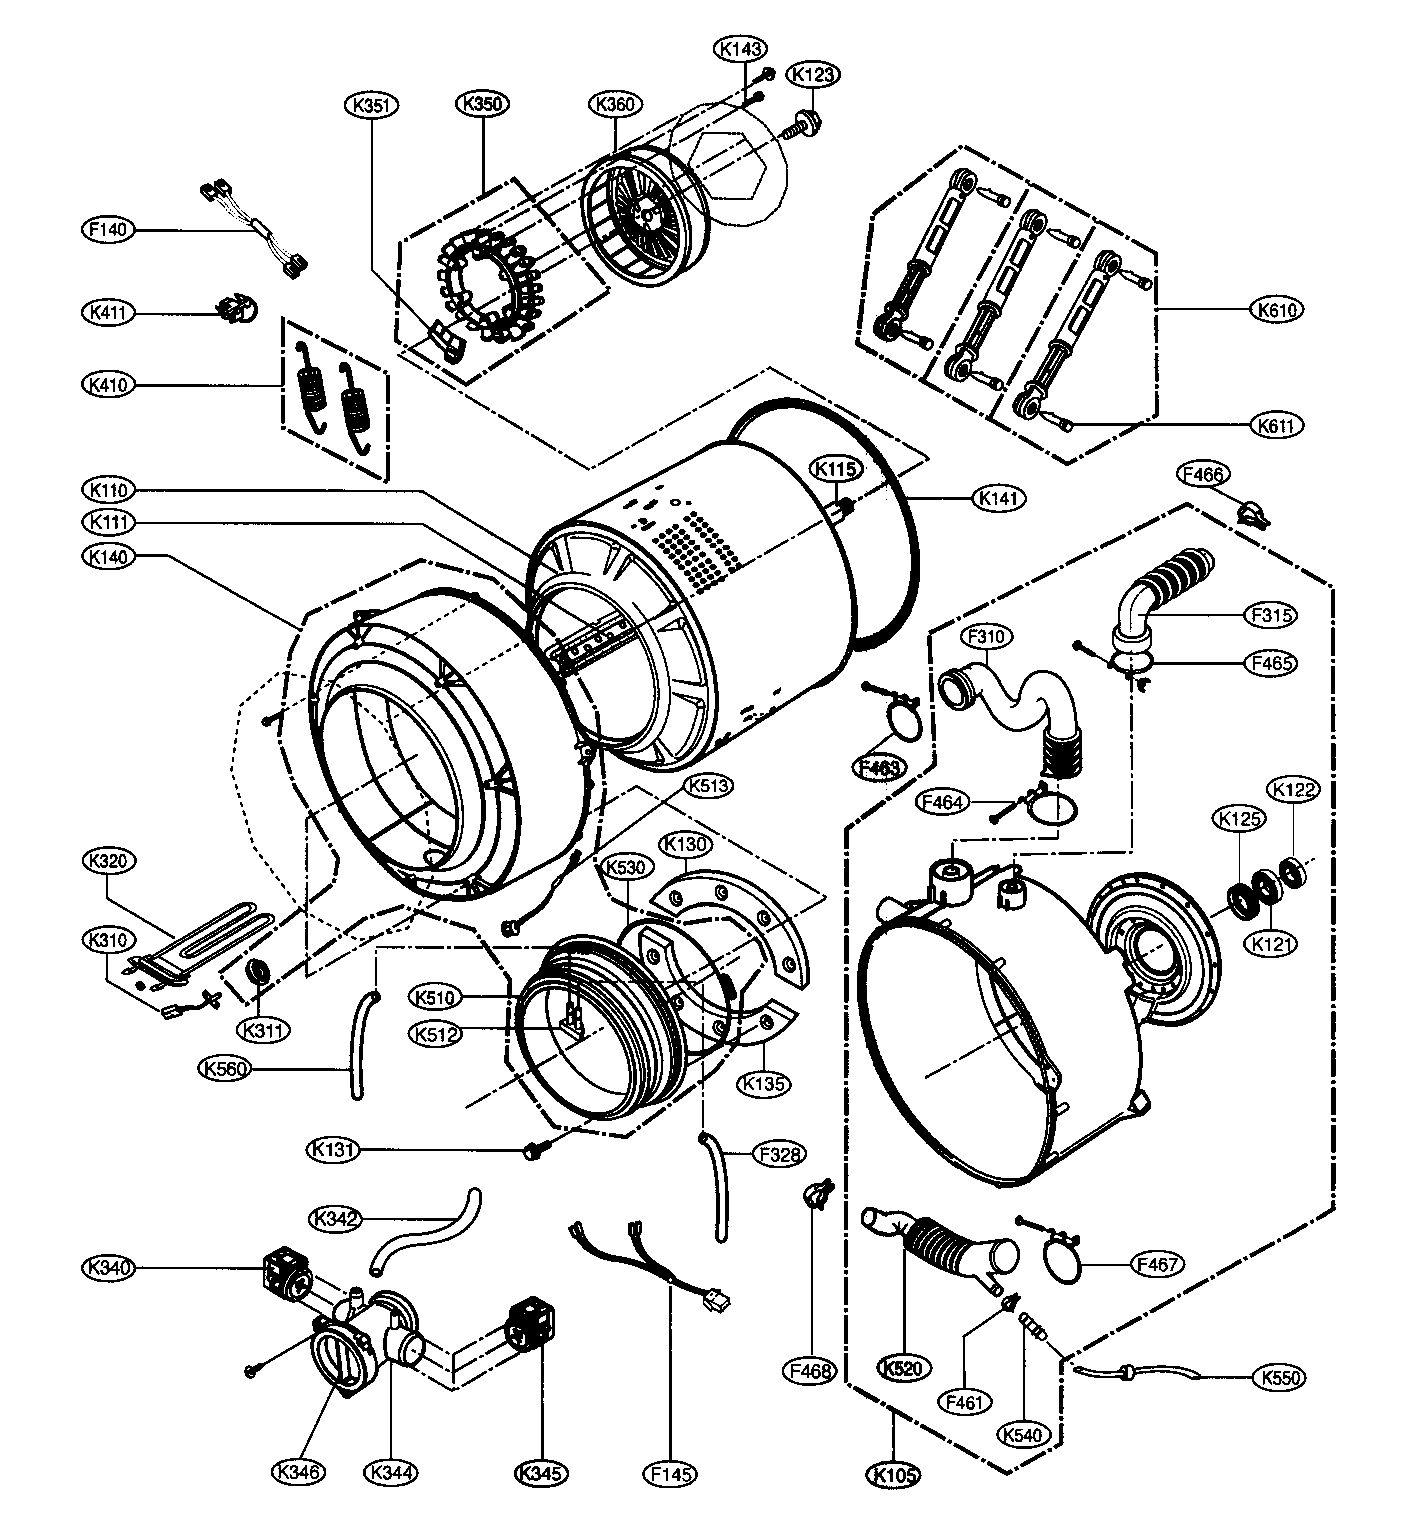 DRUM/TUB ASSY Diagram & Parts List for Model wm2487hwm LG